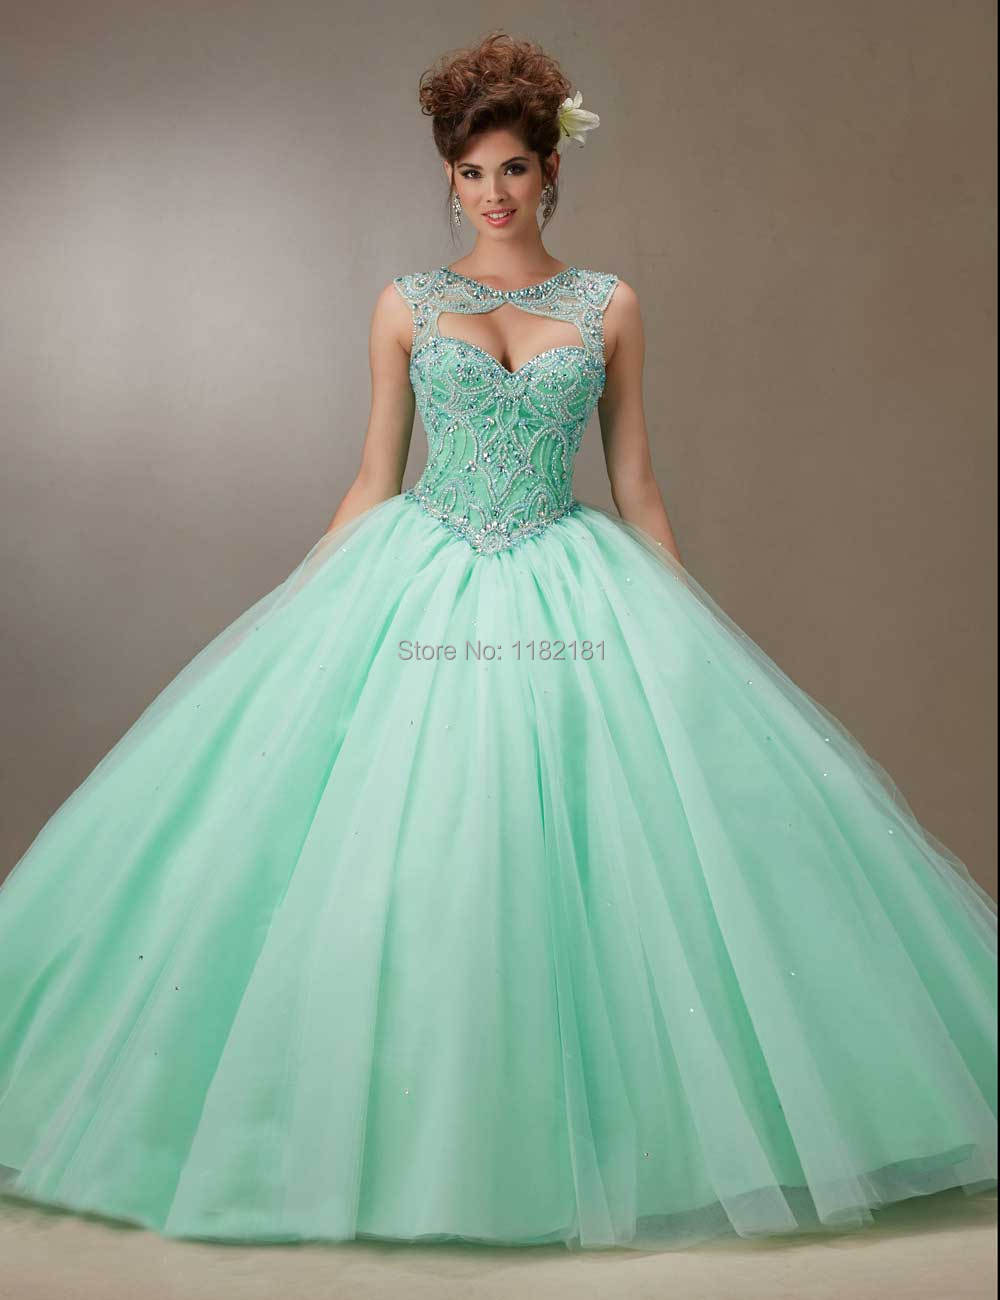 Mint Prom Dresses 2016 – fashion dresses